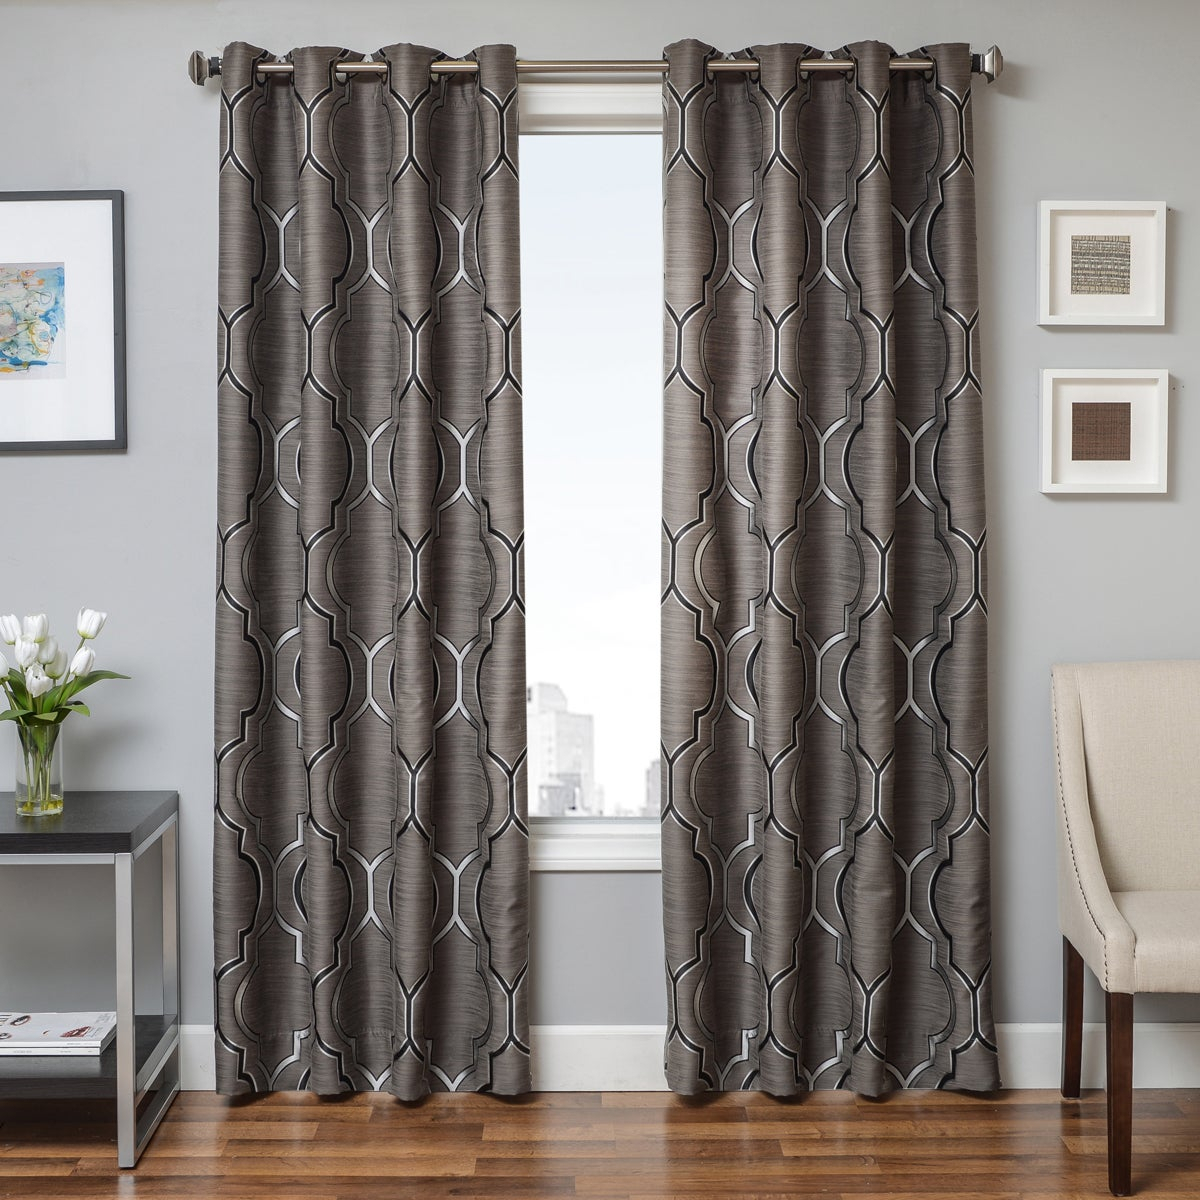 Softline Trenton Grommet Top Curtain Panel Intended For The Curated Nomad Duane Jacquard Grommet Top Curtain Panel Pairs (View 9 of 30)